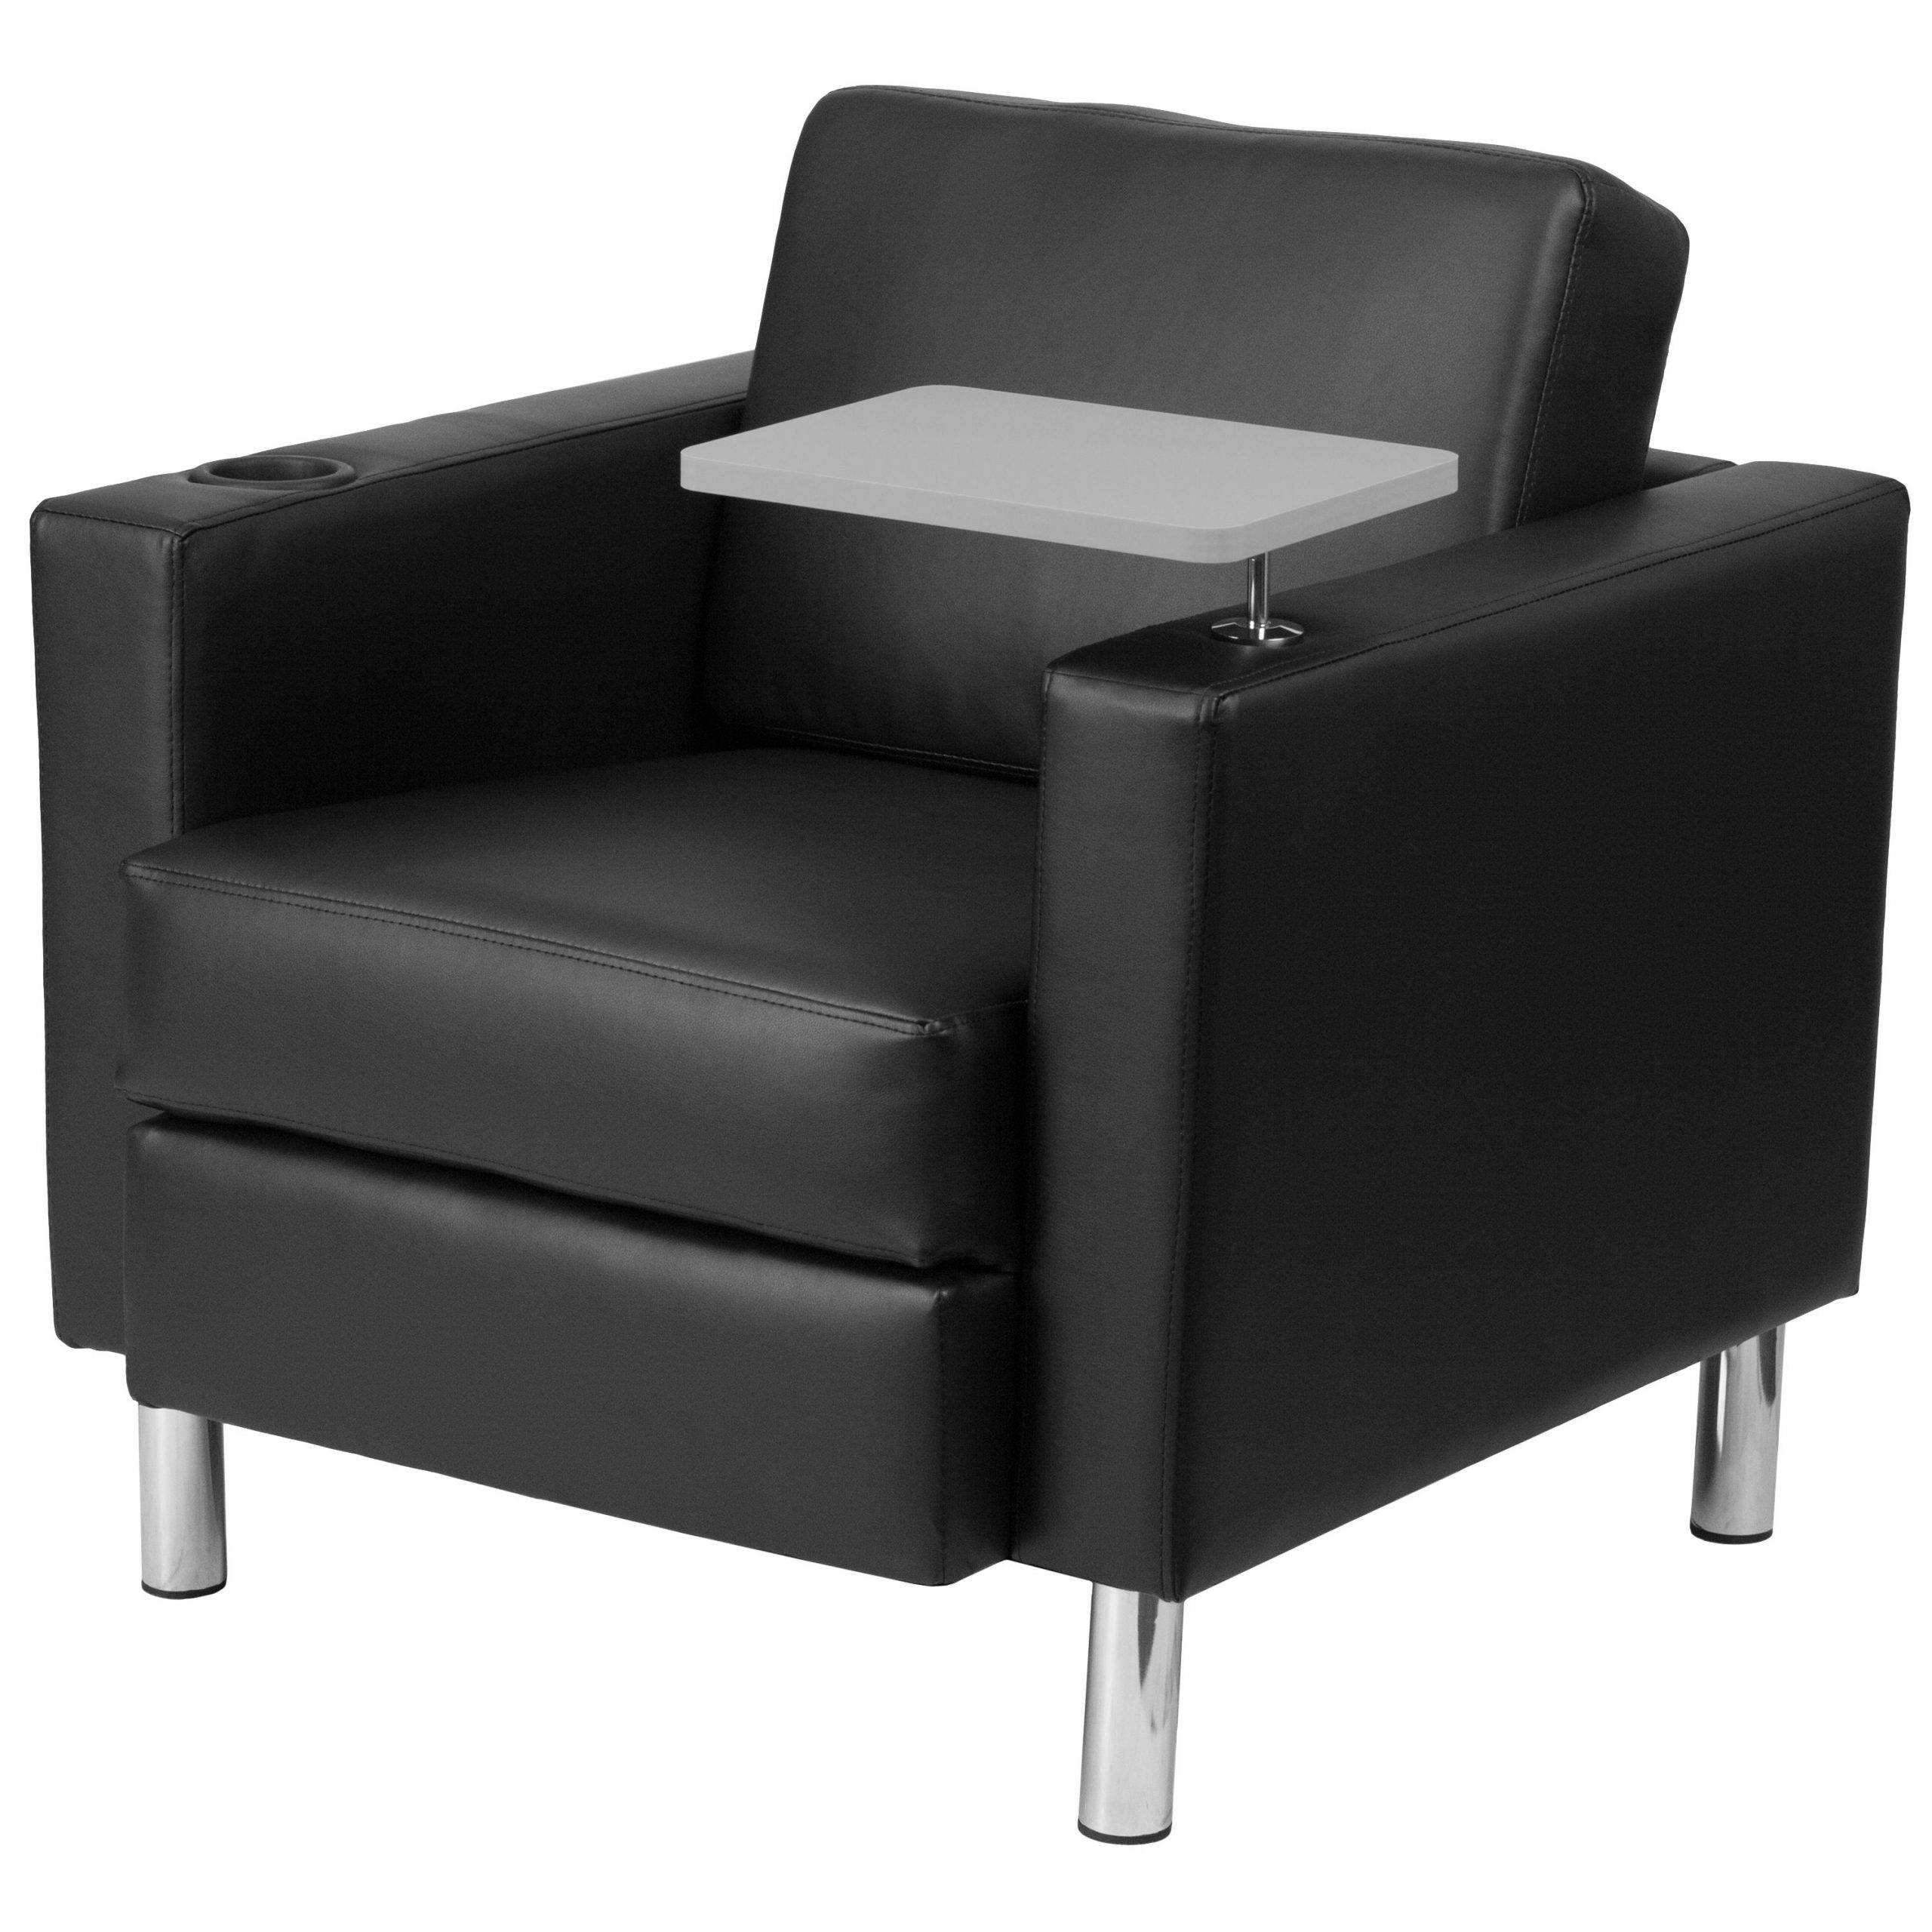 Black Leather Guest Chair With Tablet Arm, Tall Chrome Legs Regarding Popular Liam Faux Leather Barrel Chairs (View 19 of 20)